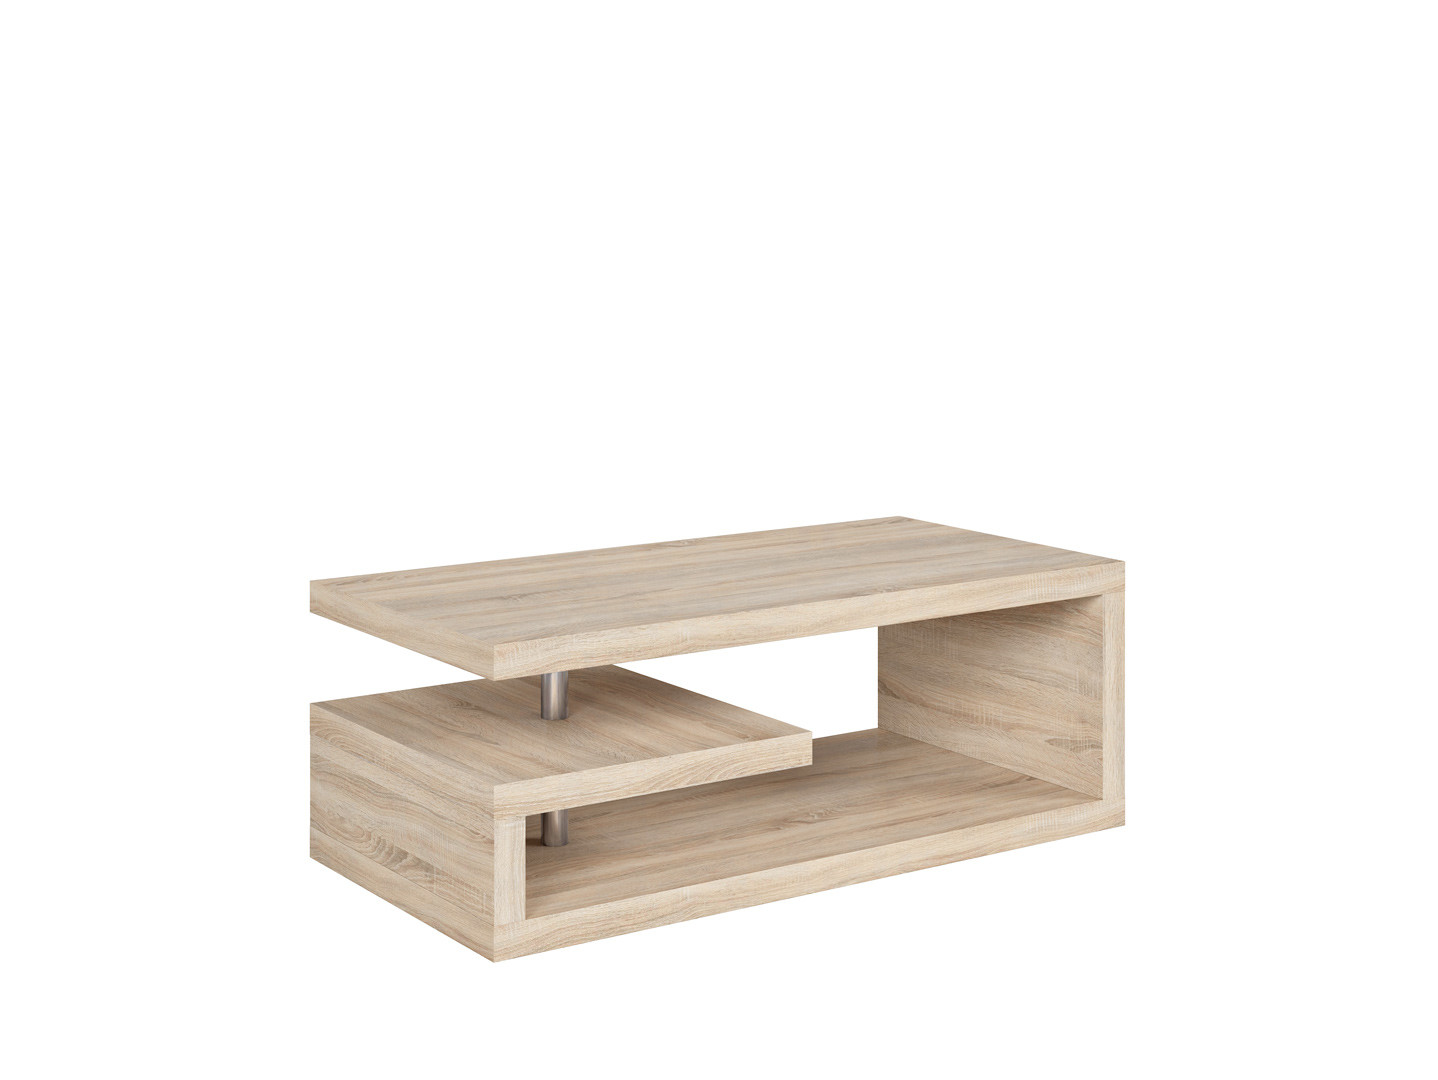 Coffee table glimp 60cm x 45cm x 120cm furniture store brw for Coffee table 60cm x 60cm